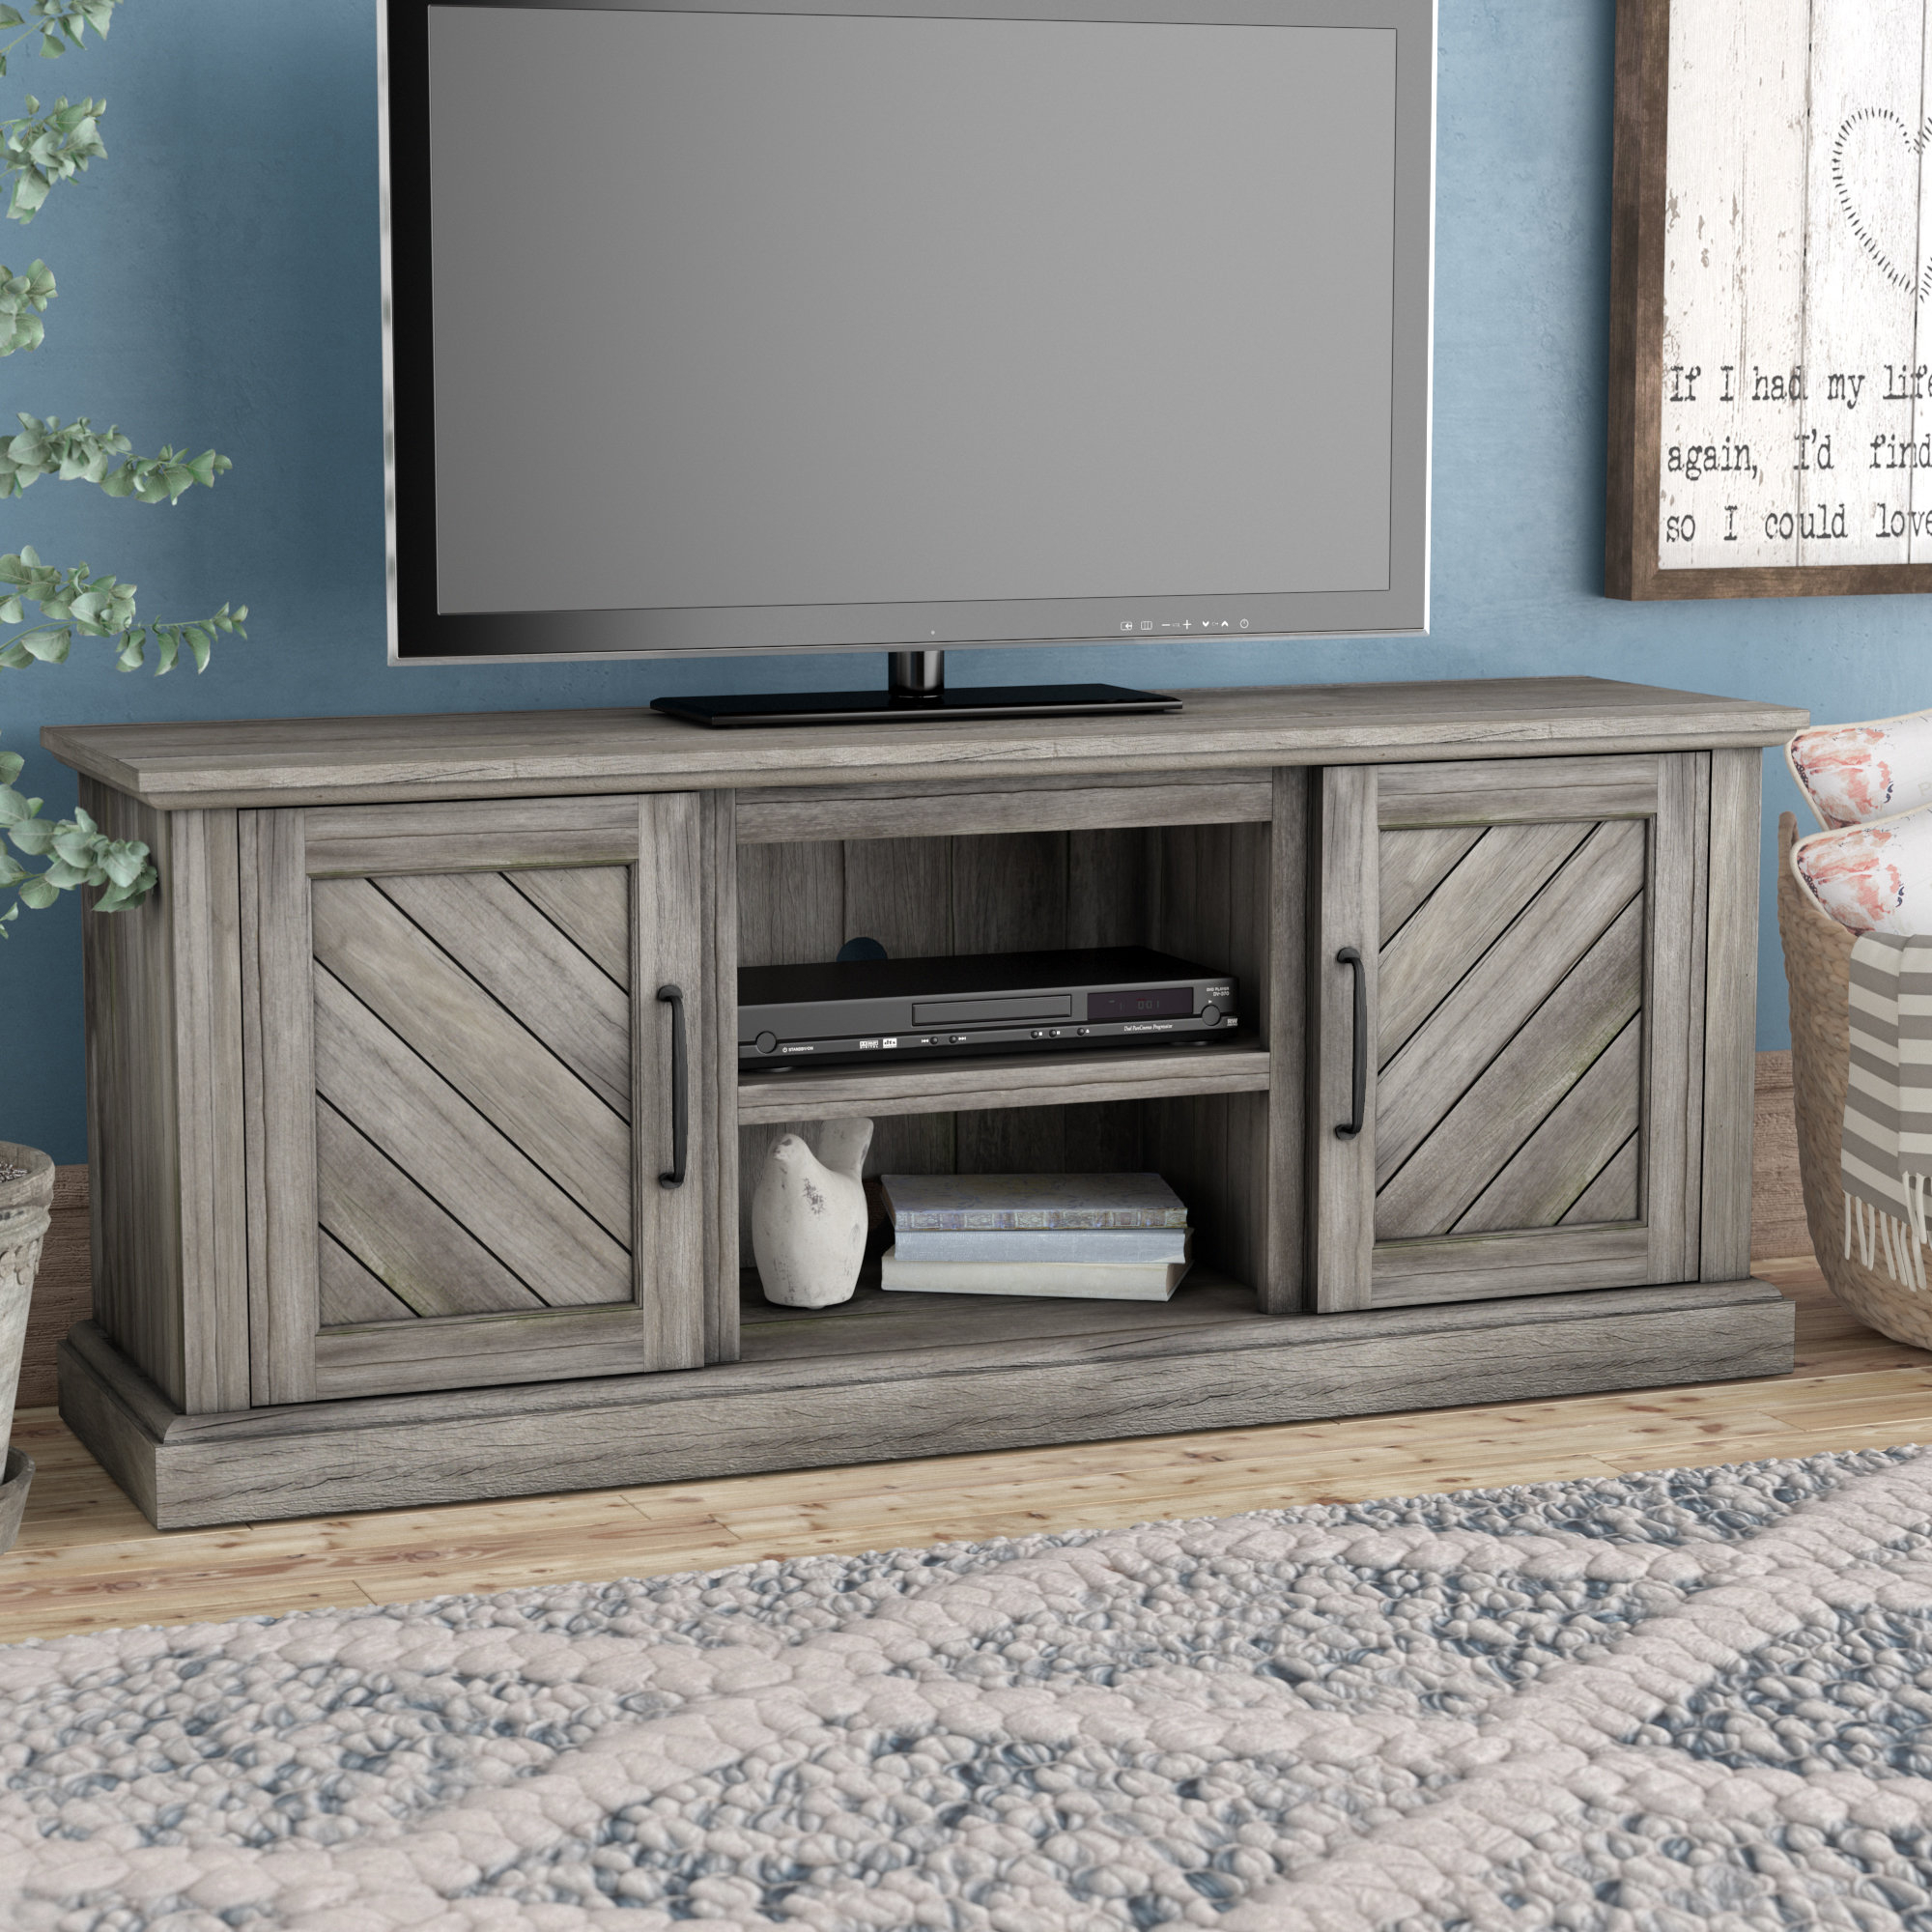 60 64 Inch Tv Stands | Birch Lane With Regard To Edwin Black 64 Inch Tv Stands (Photo 4 of 30)